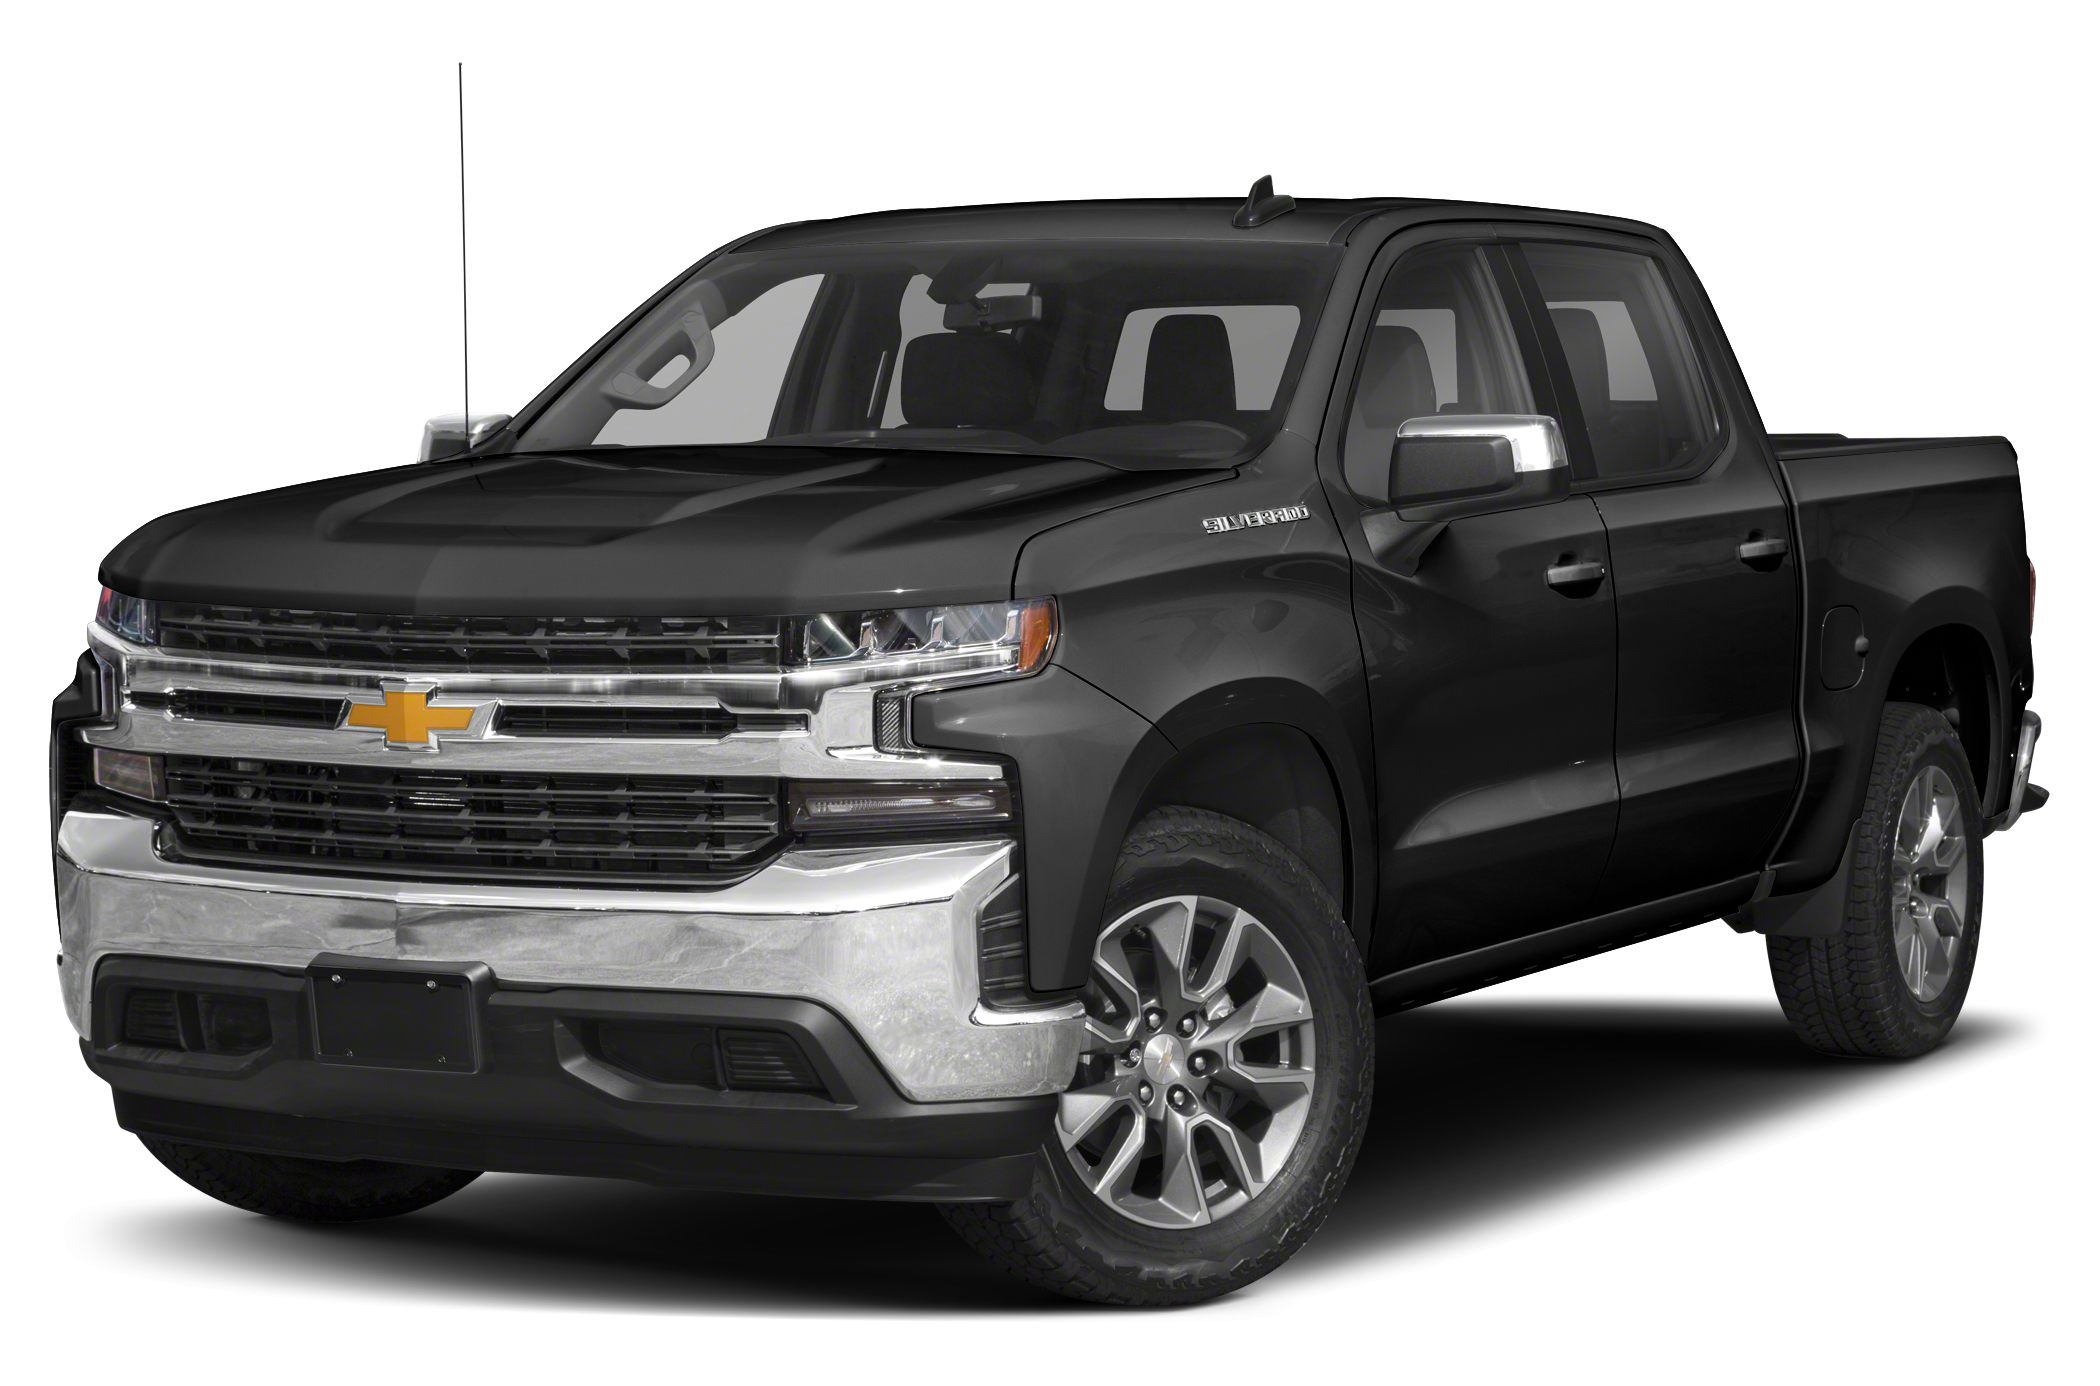 2019 Chevrolet Silverado 1500 LTZ 4x2 Crew Cab 6.6 ft. box 157 in. WB